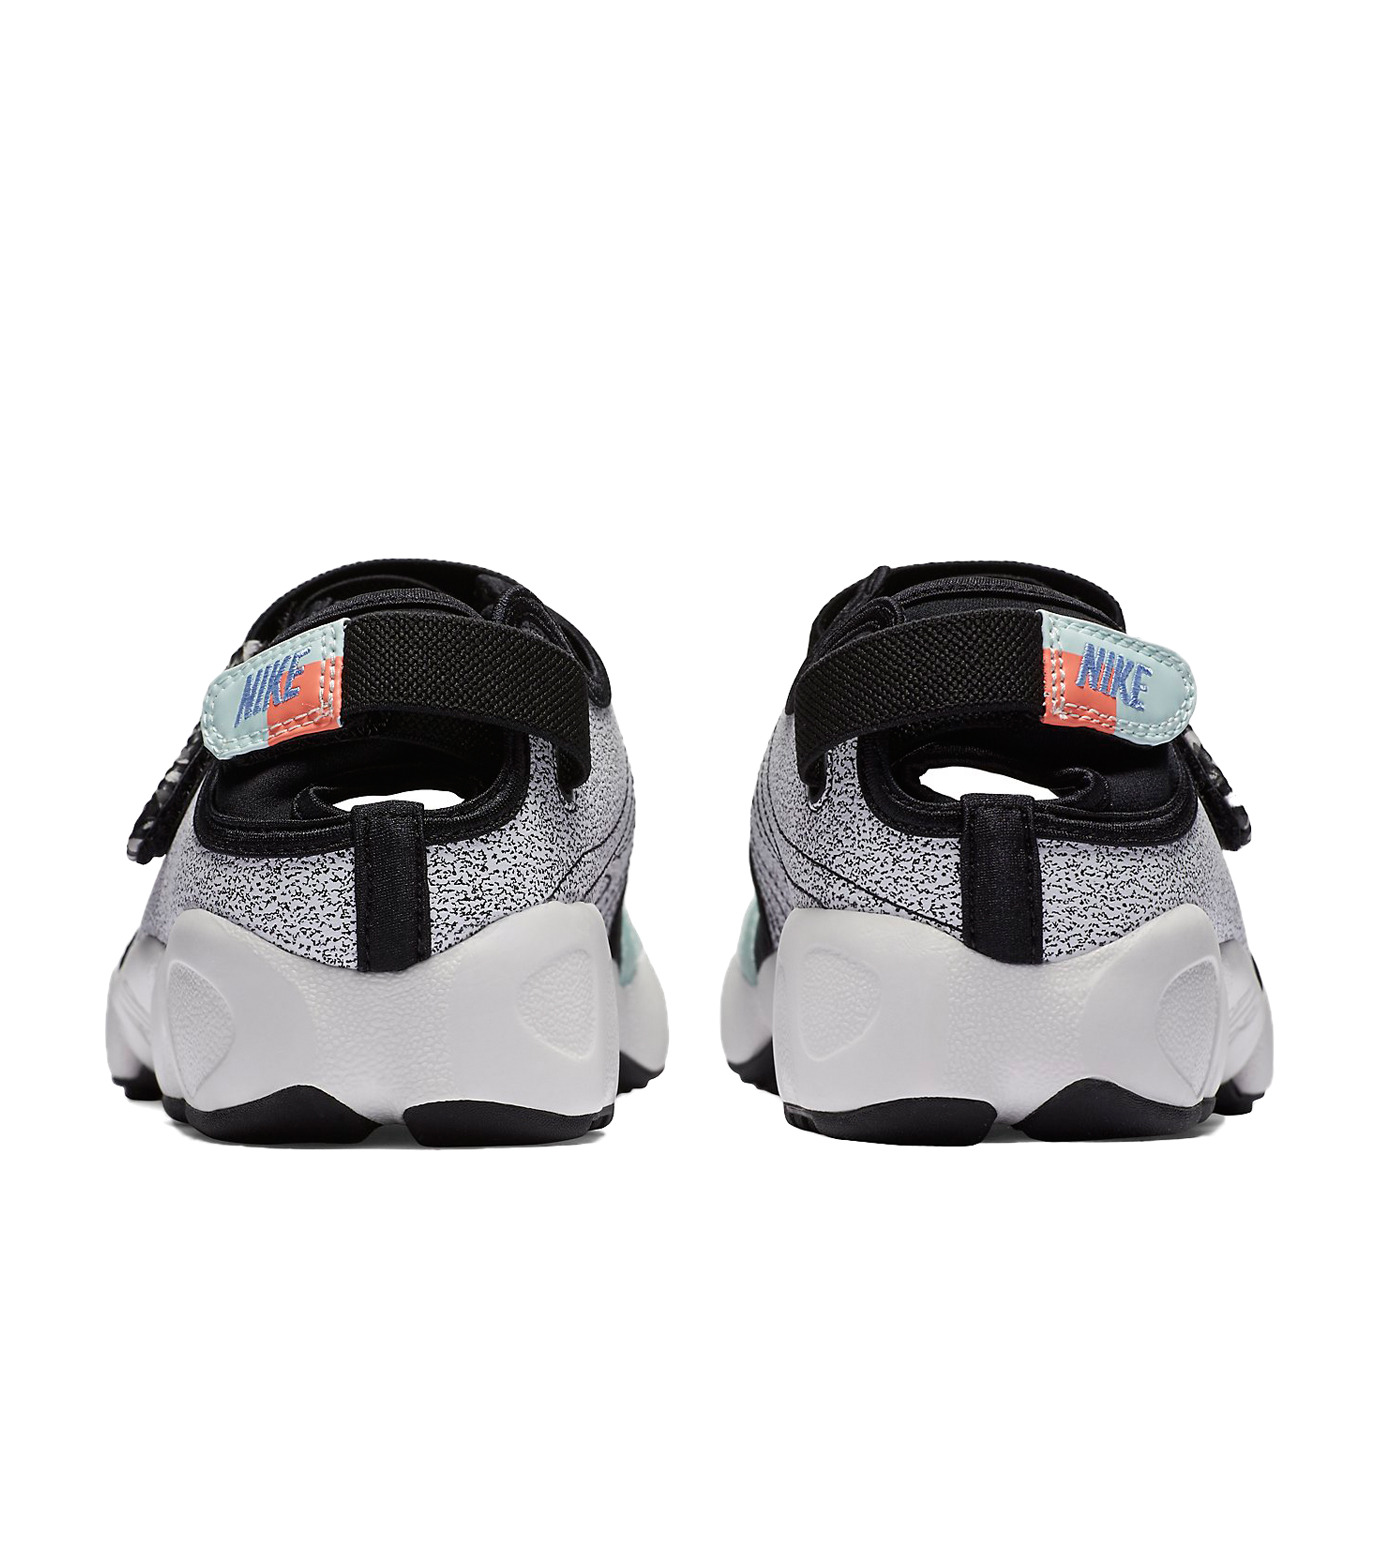 NIKE(ナイキ)のWMNS Air Rift Premium-MULTI COLOUR(シューズ/shoes)-848387-300-9 拡大詳細画像6